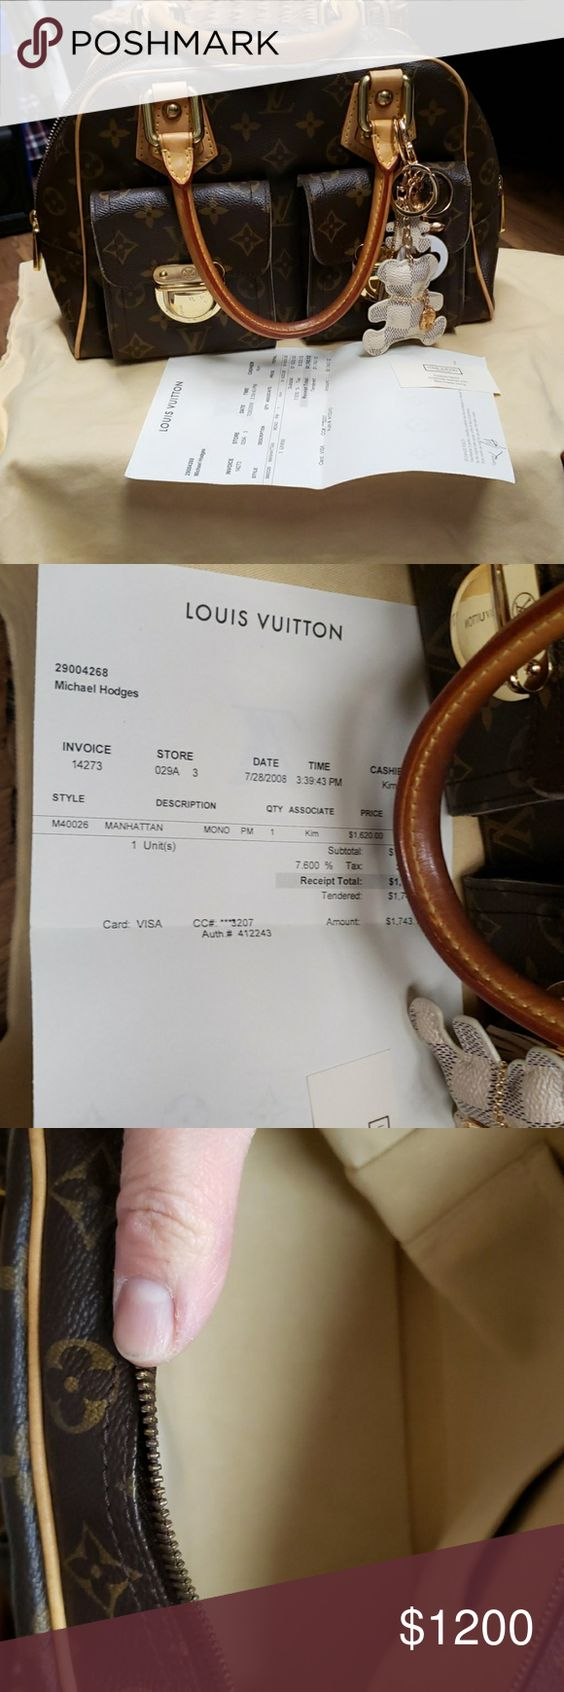 Authentic Lv M40026 Manhattan Monopm Lv Monogram Bag Lv Monogram Louis Vuitton Bag